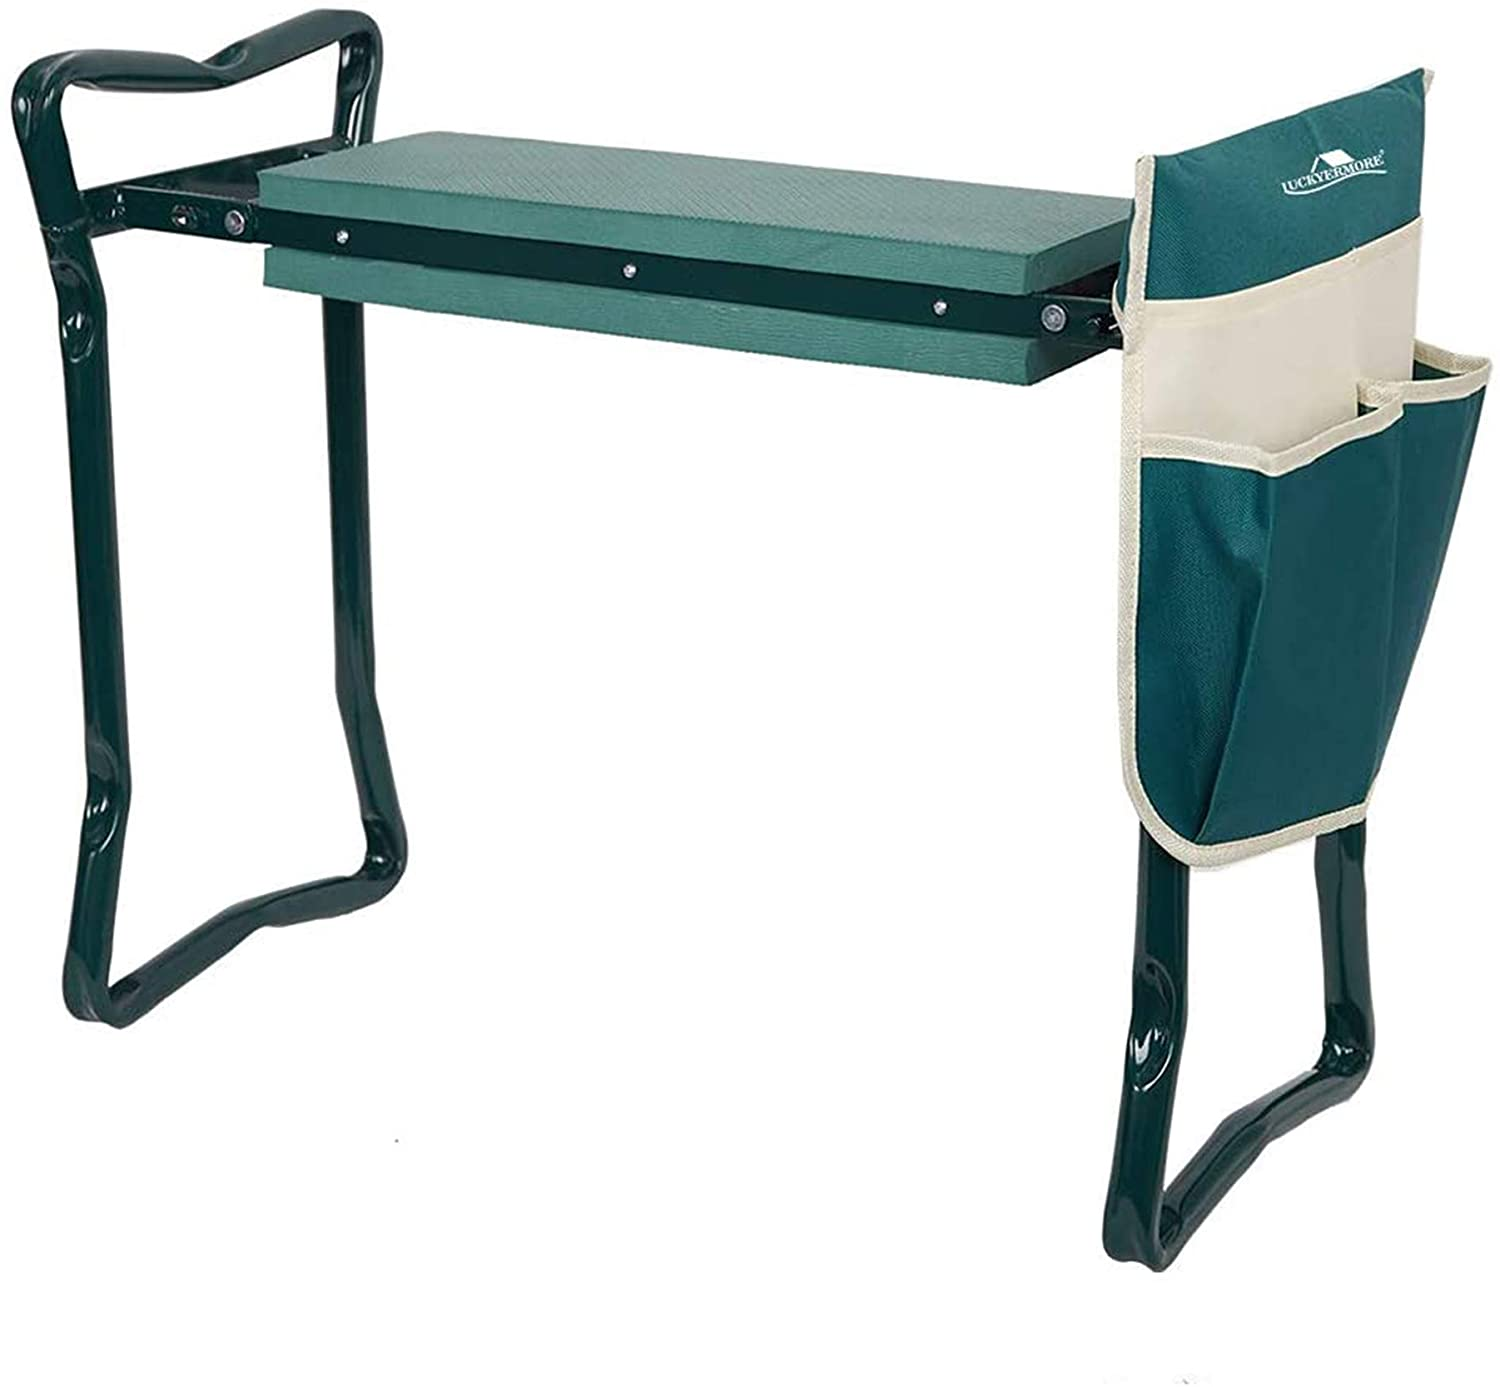 LUCKYERMORE Garden Kneeler and Seat Heavy Duty Gardening Bench for Kneeling and Sitting Folding Garden Stools with Tool Pouch and Kneeling Pad